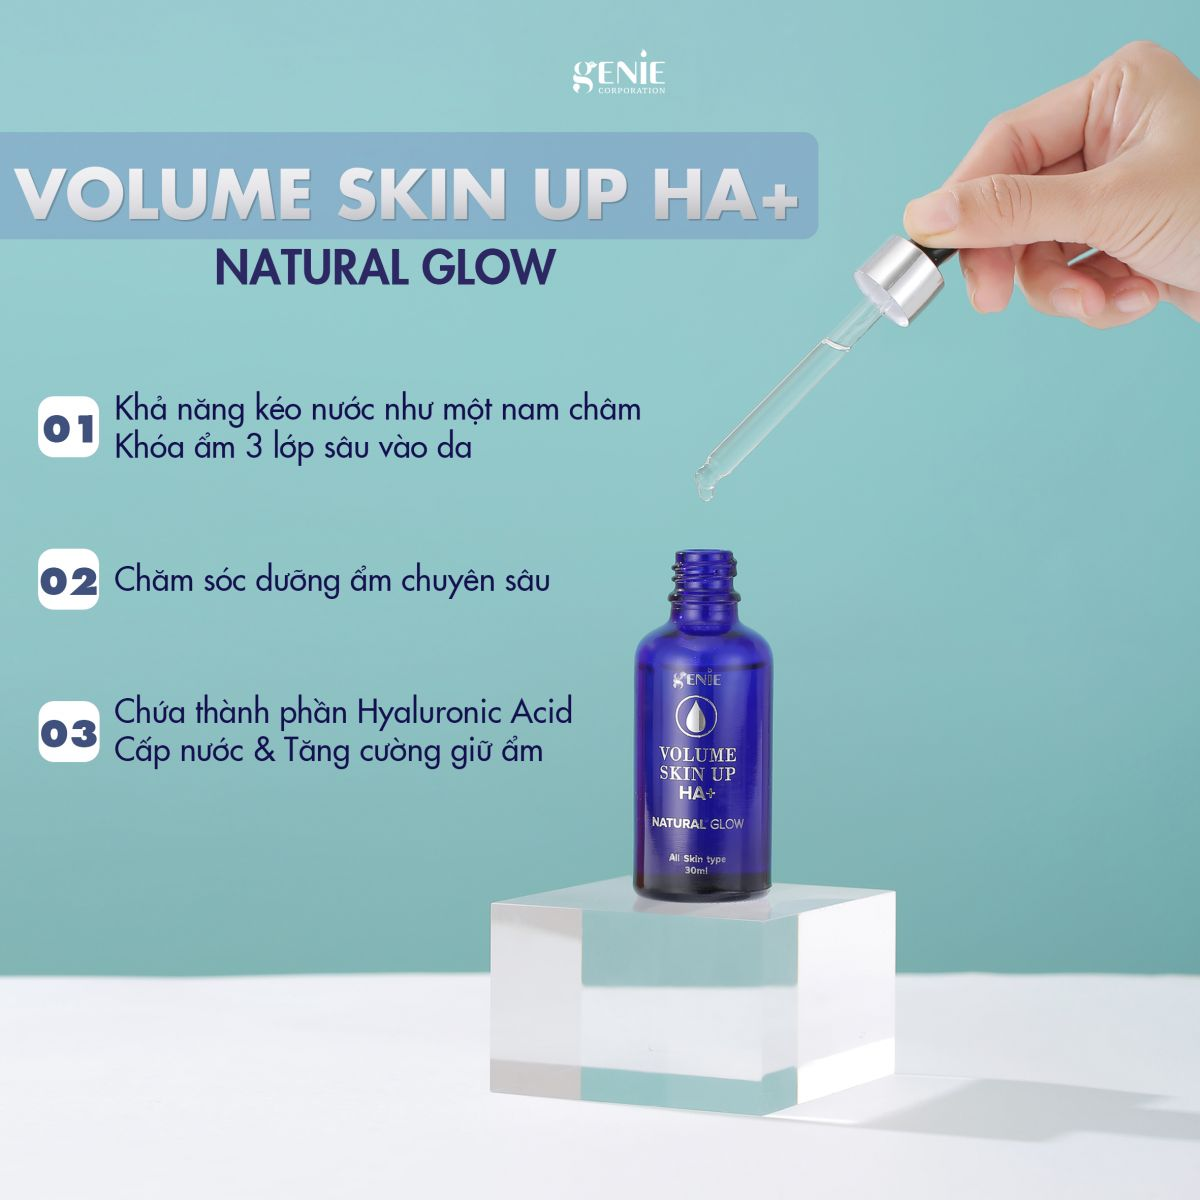 SERUM VOLUME SKIN UP HA+